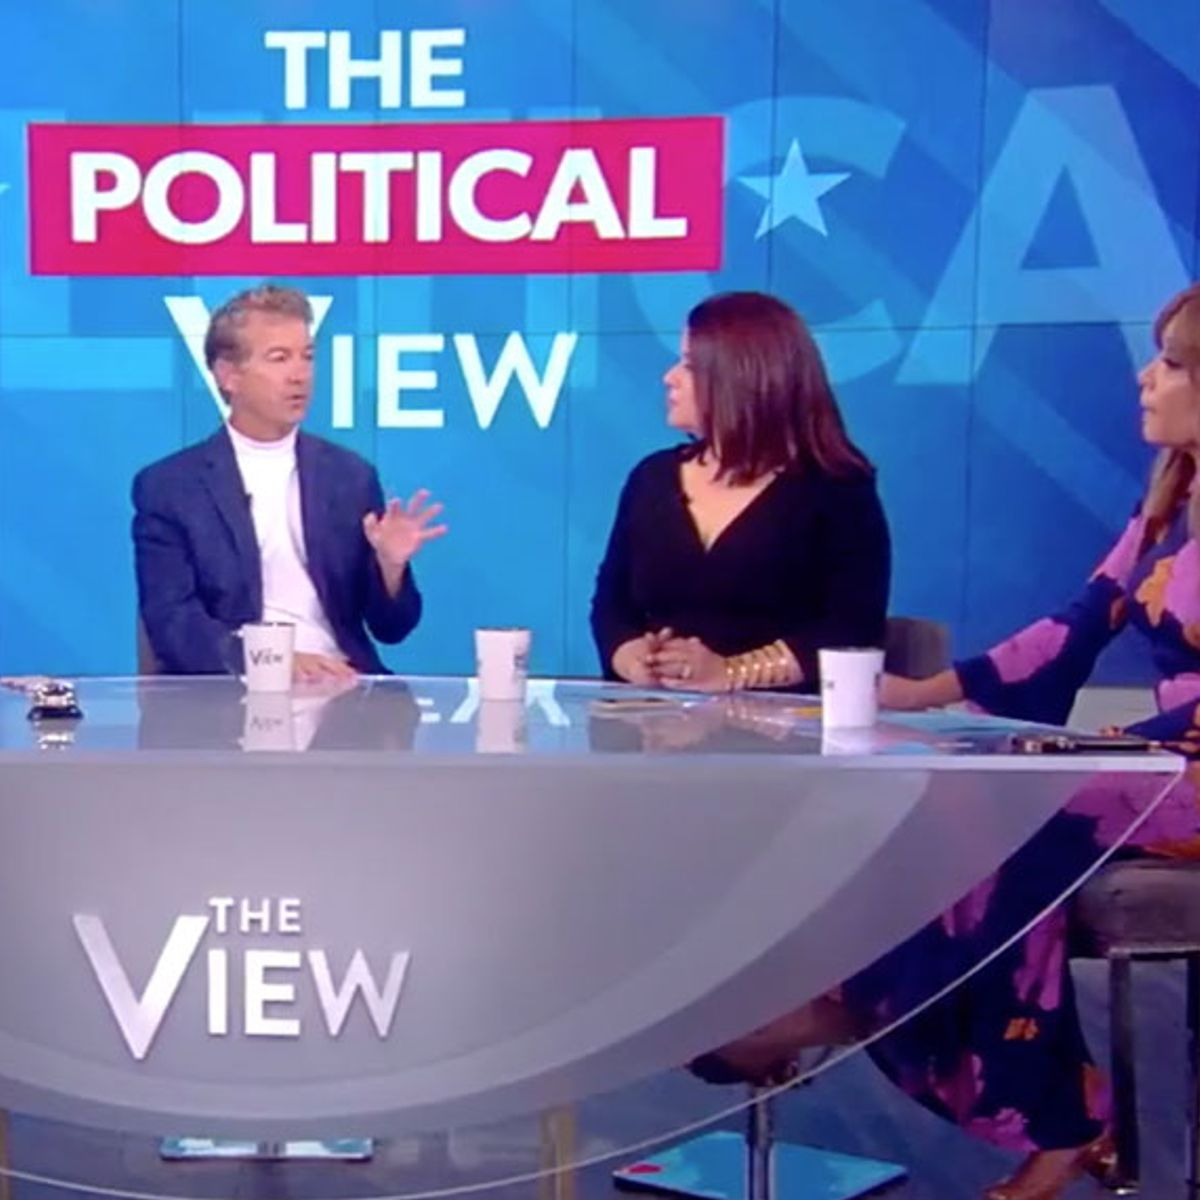 """The View"" audience cheers Republican co-host Ana Navarro whenshe tells Rand Paul not to ""mansplain"""